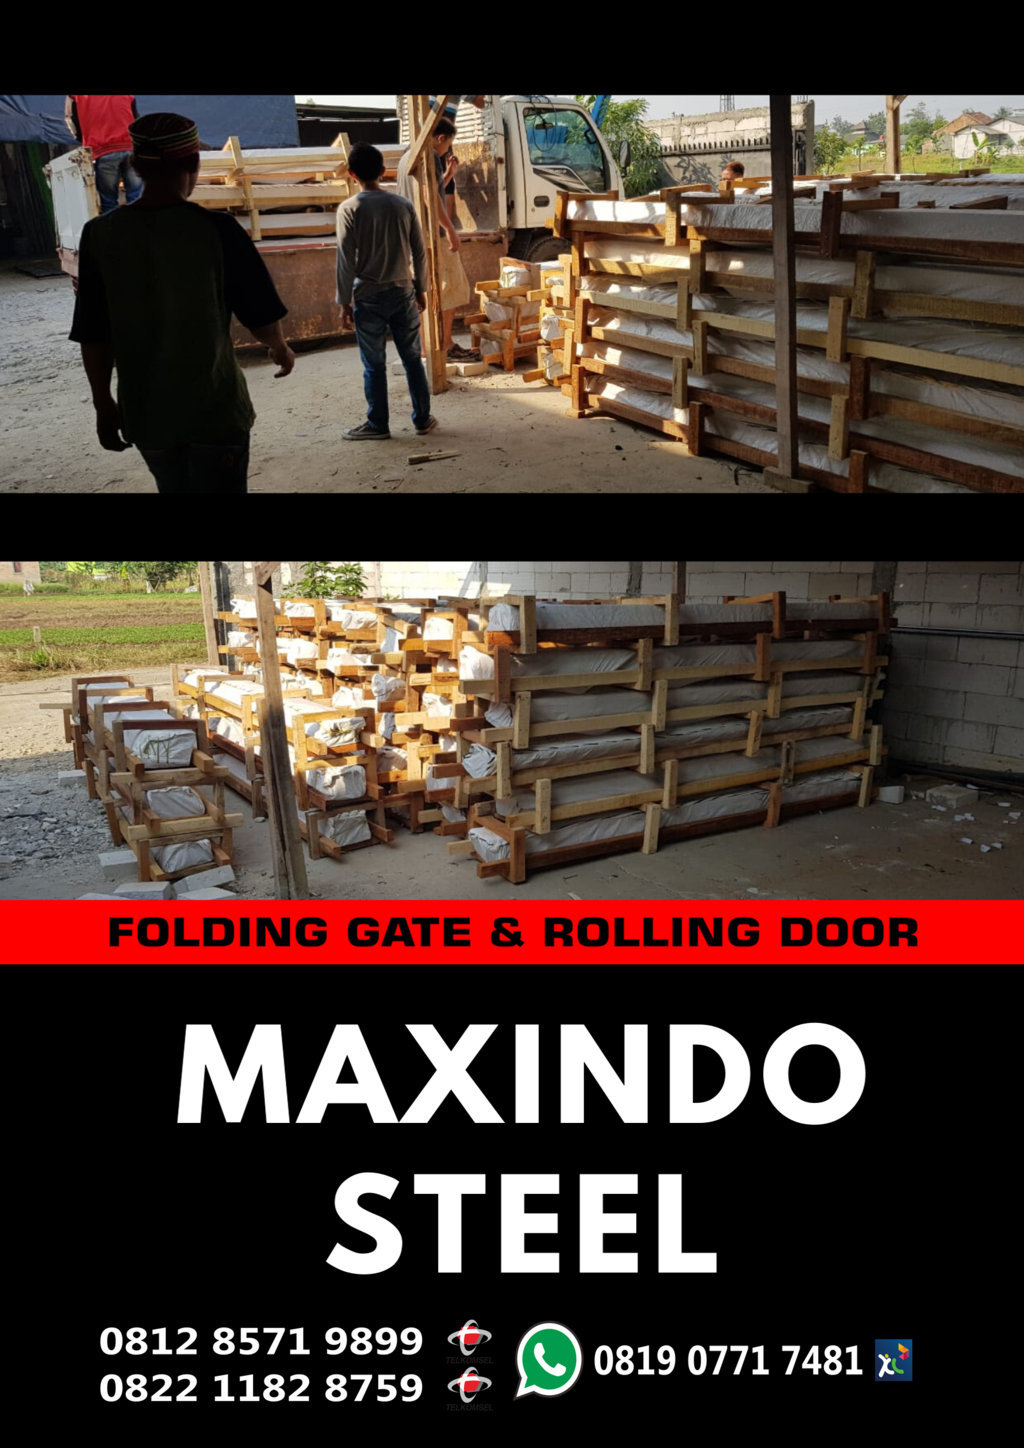 FOLDING-GATE-ROLLING-DOOR-ACEH